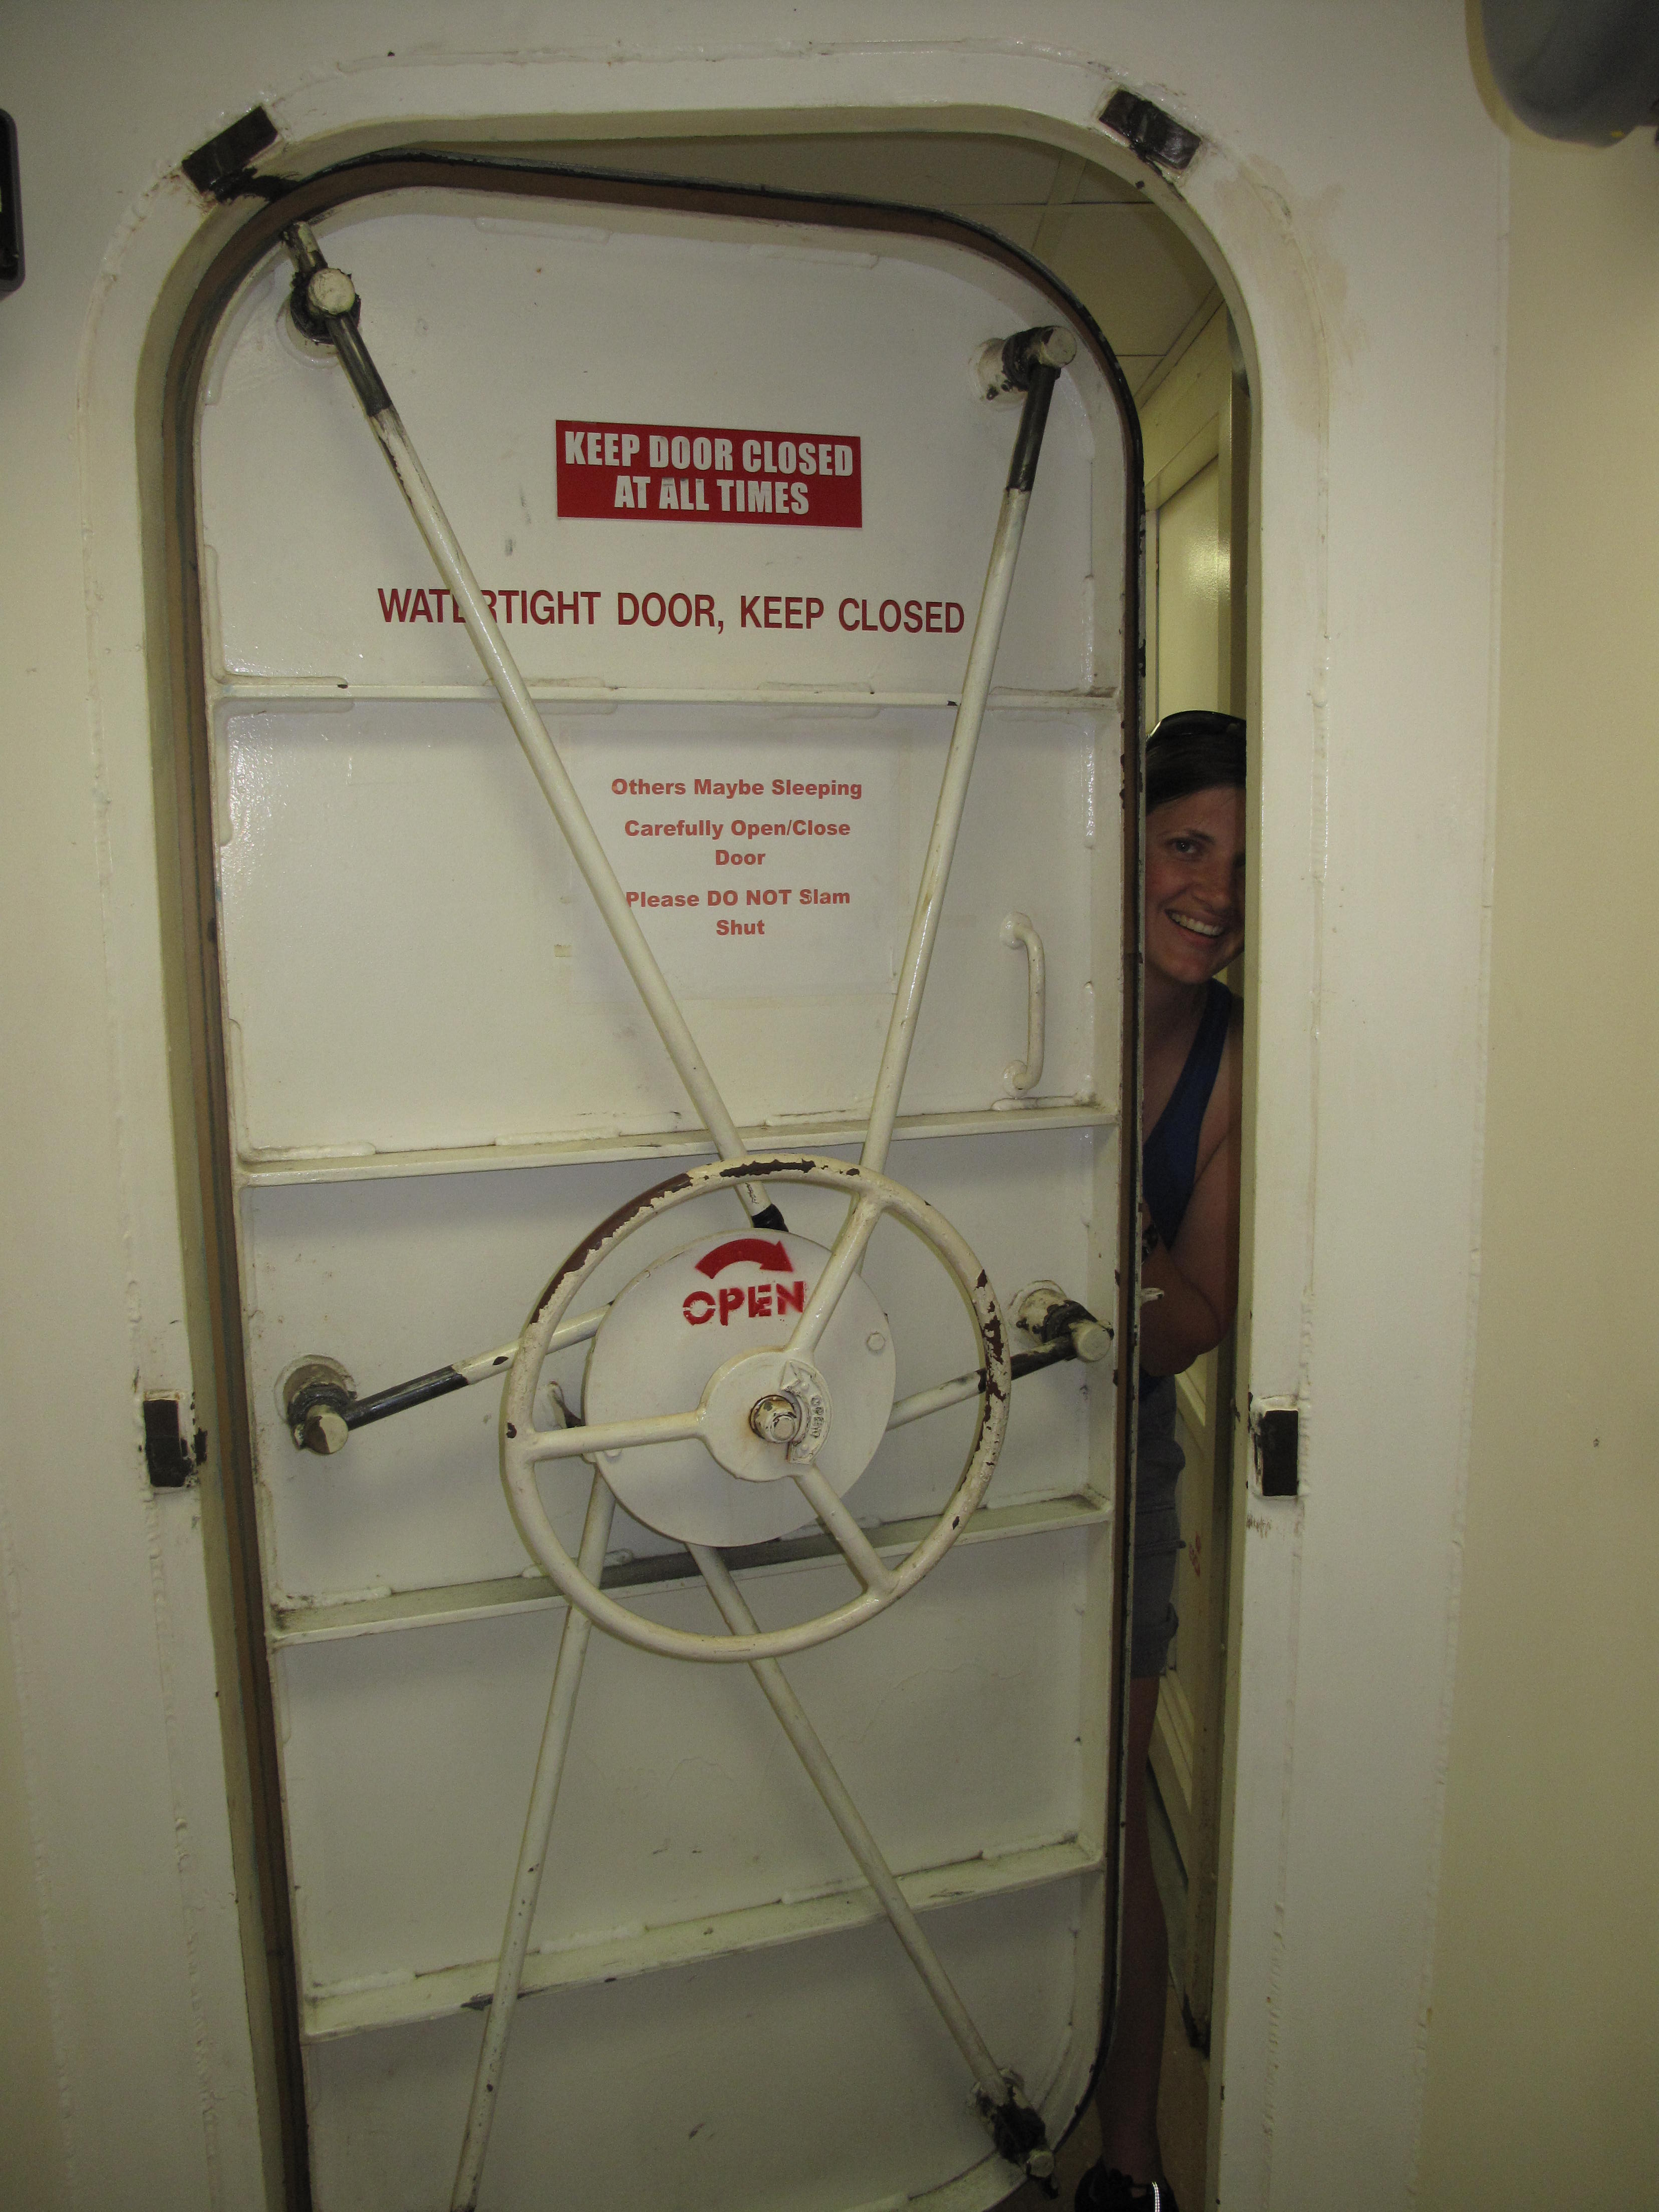 This door ... & watertight doors | NOAA Teacher at Sea Blog